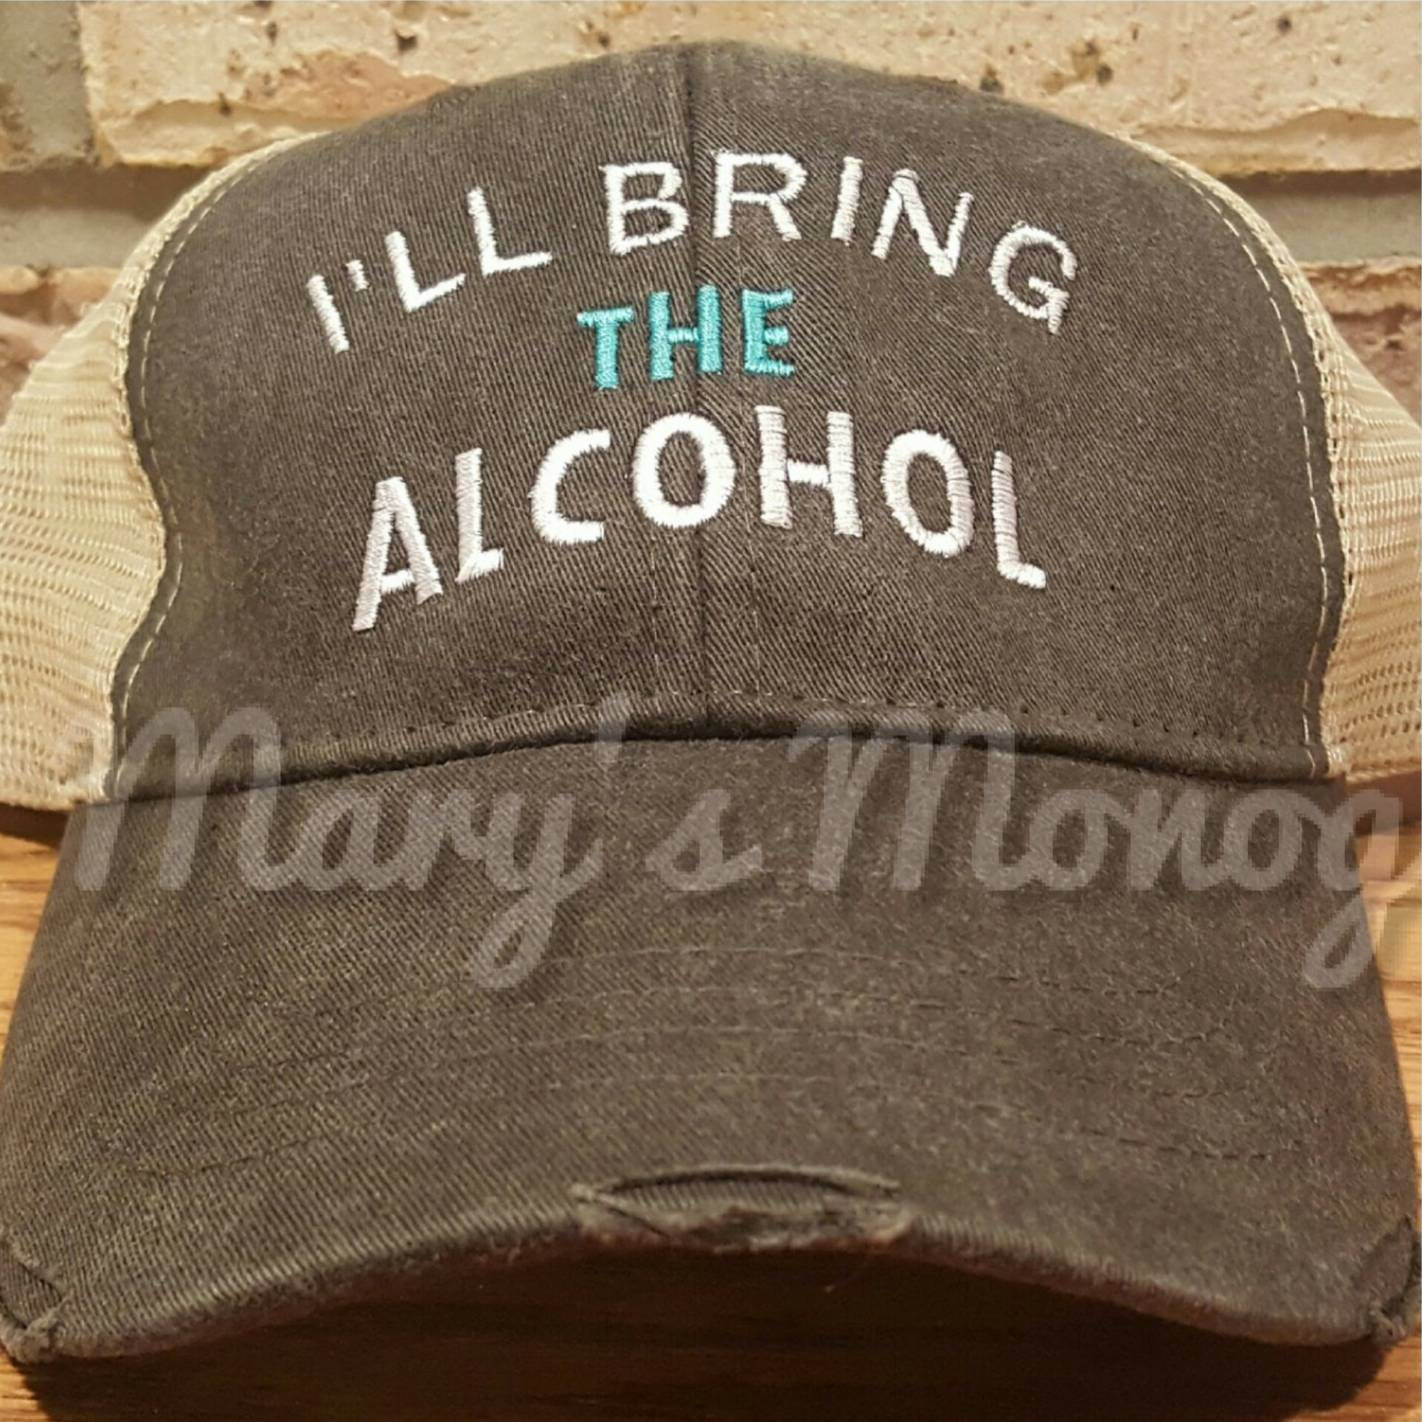 Set of 2, I'll bring the alcohol, bad decisions trucker hat set, custom girls trip, bff, night out, party drinking hat set